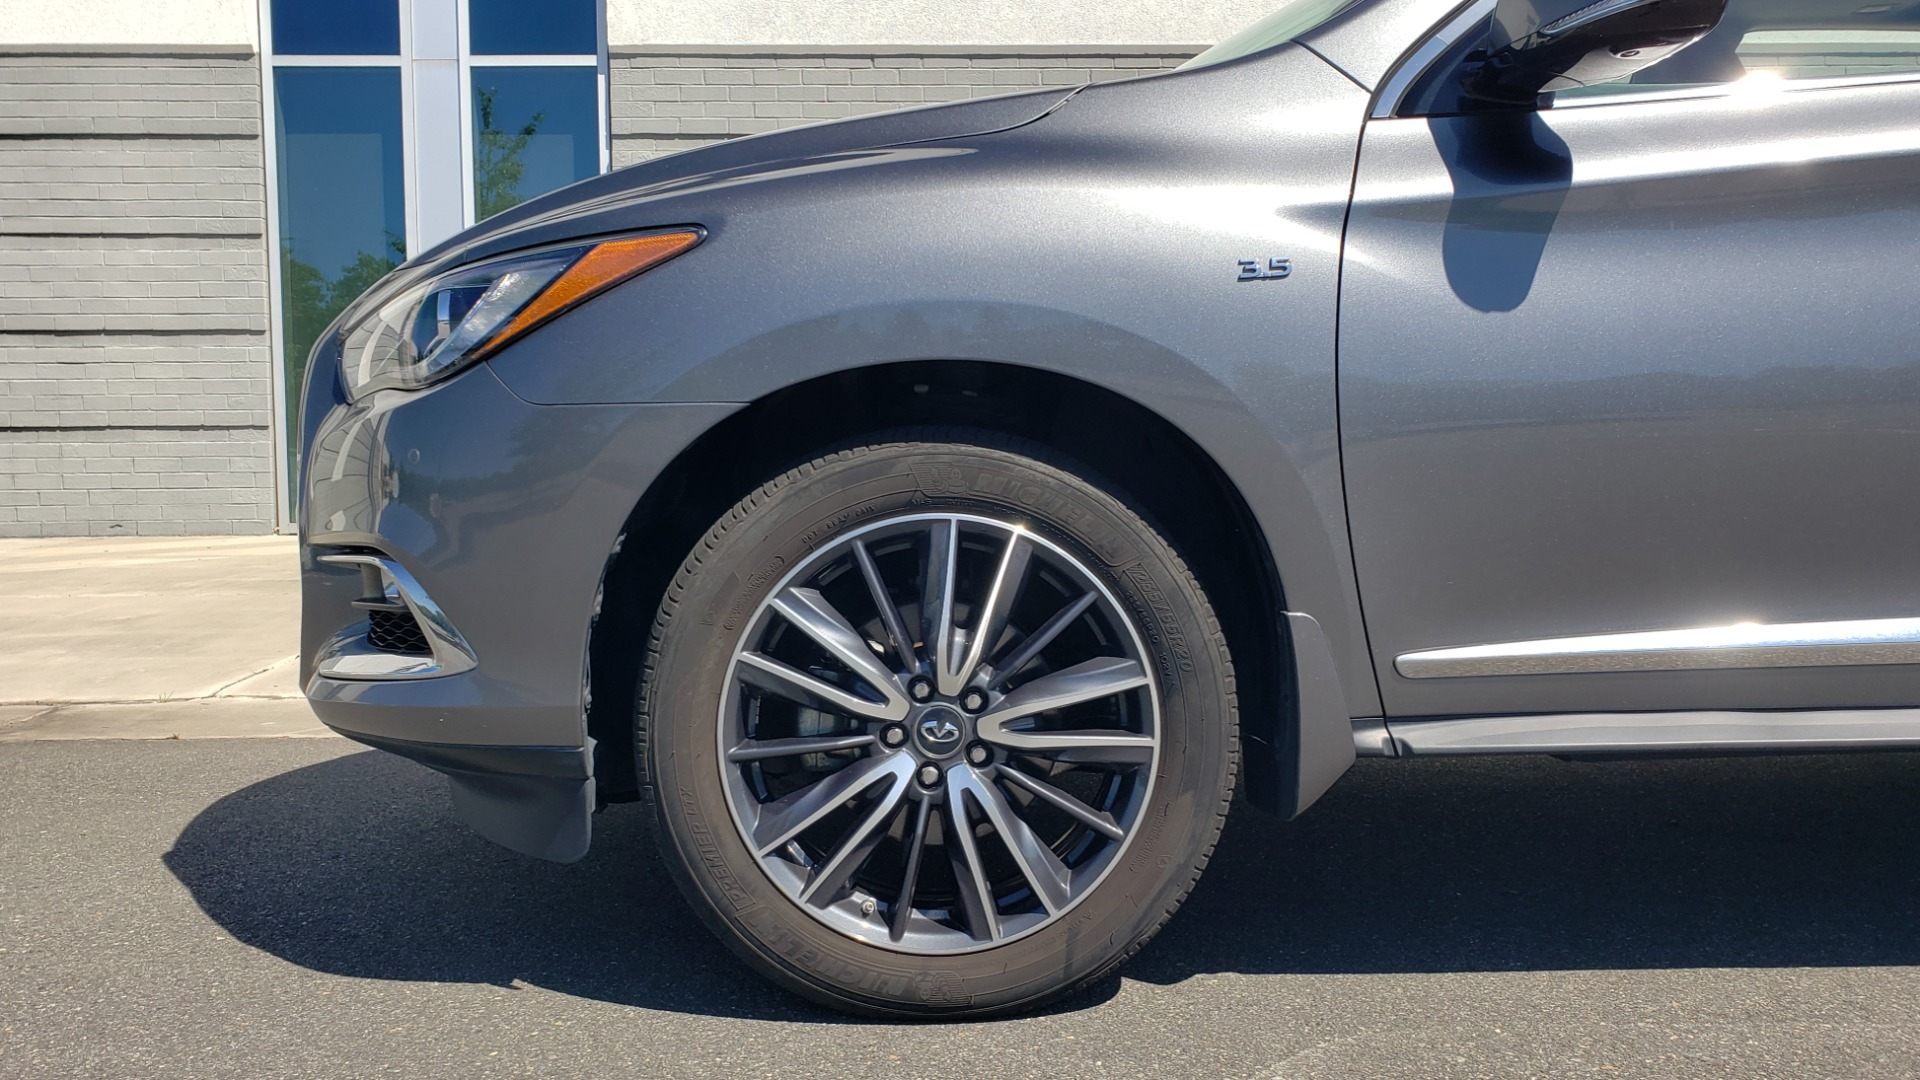 Used 2018 INFINITI QX60 3.5L V6 / FWD / CVT TRANS / NAV / SUNROOF / 3-ROWS / REARVIEW for sale $31,999 at Formula Imports in Charlotte NC 28227 83